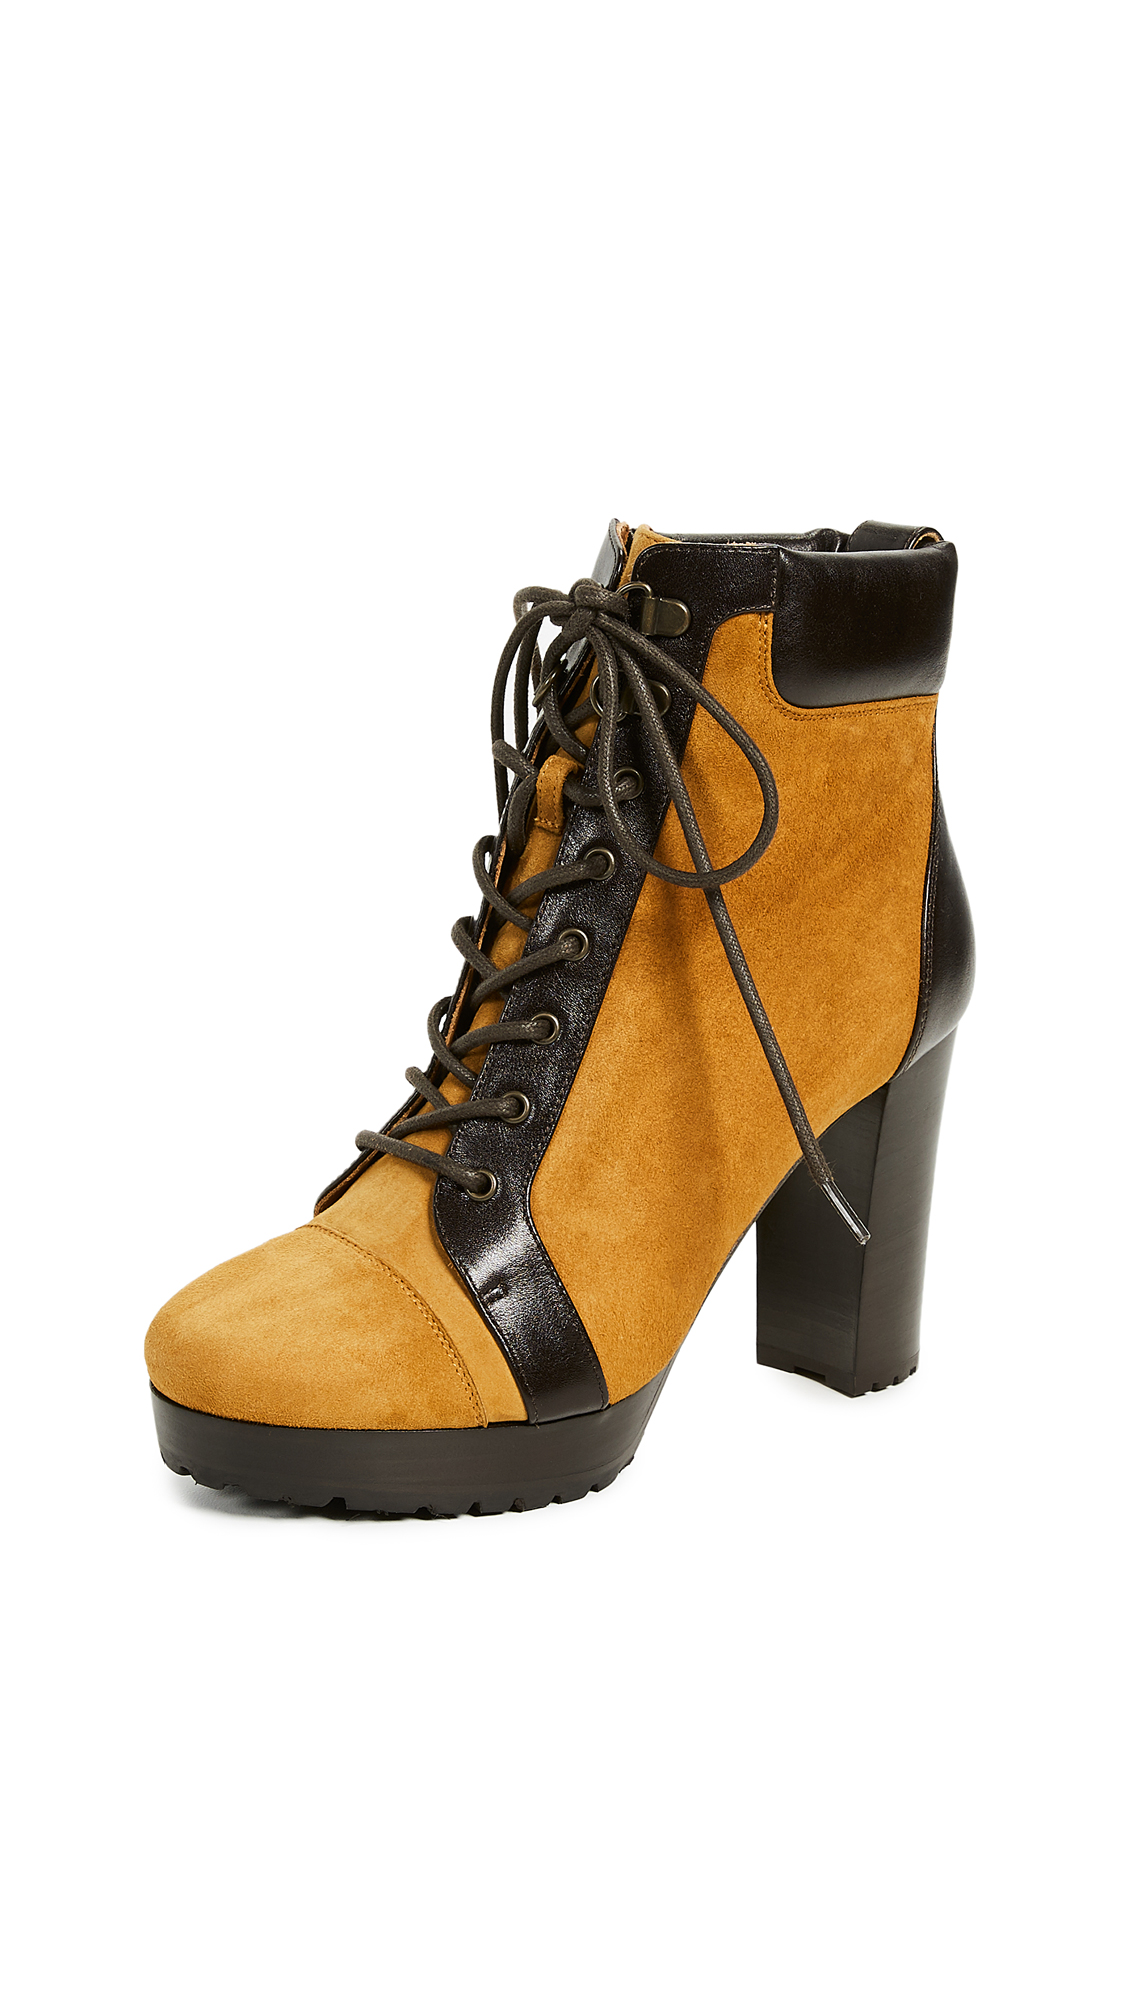 Veronica Beard Axel Booties - Saffron/Dark Brown